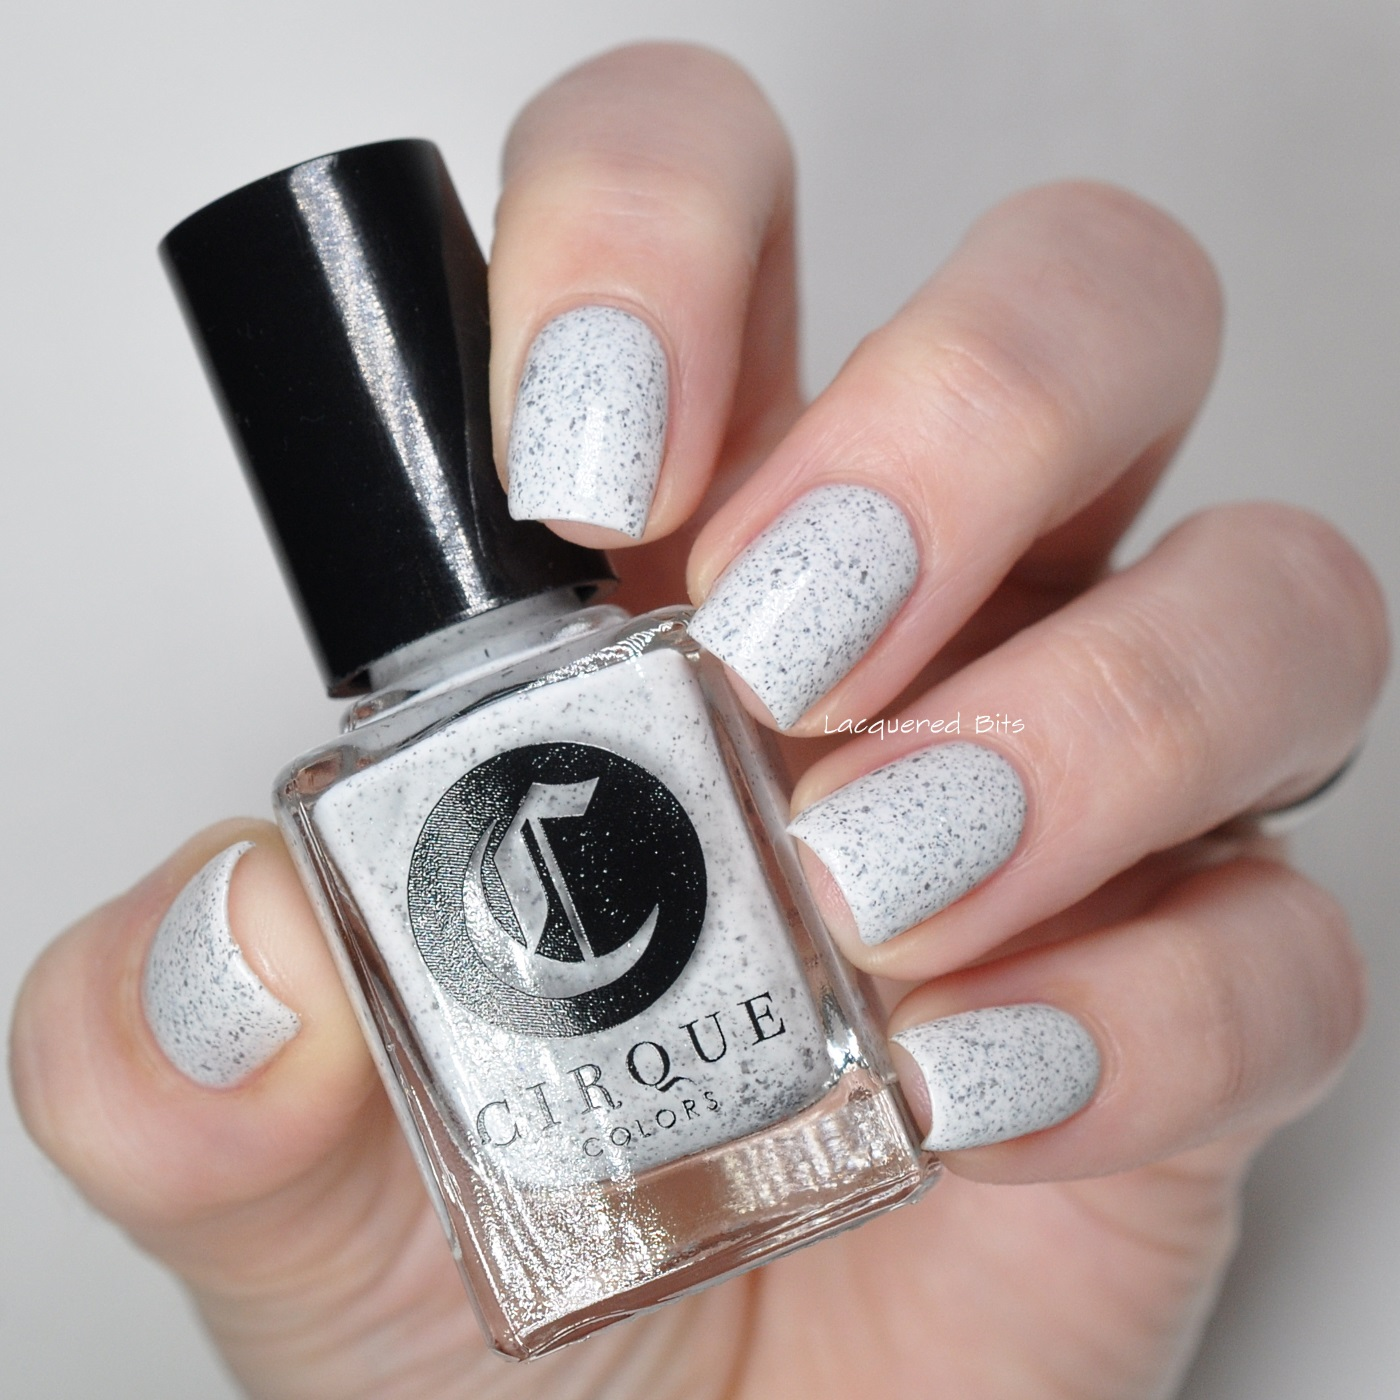 Hatch - Cirque Colors - Speckled 2016